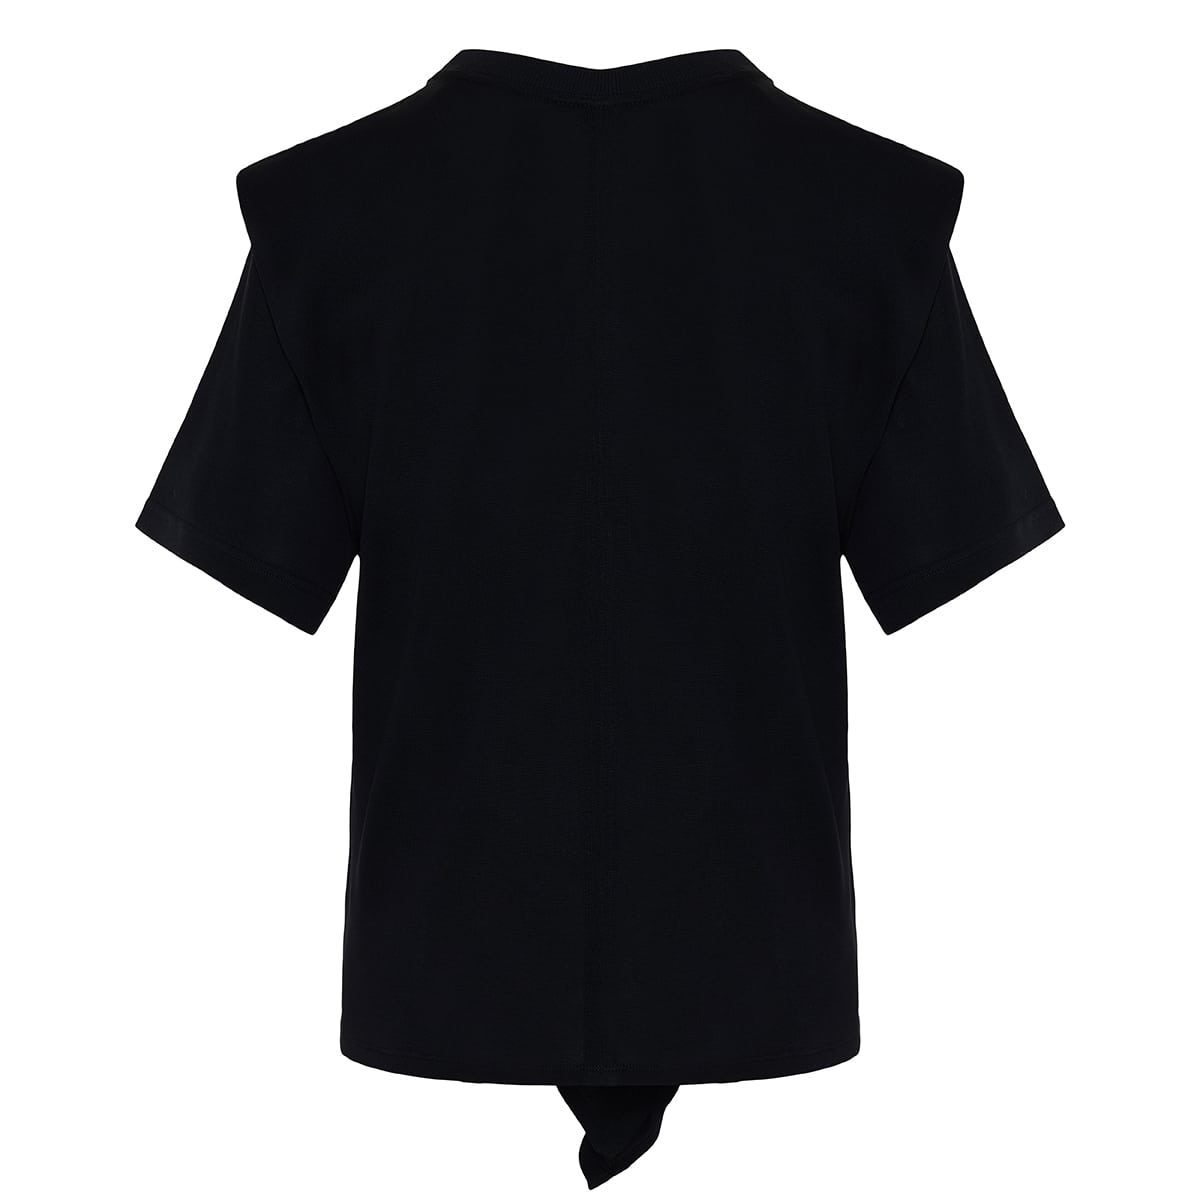 Zelikia knot knitted t-shirt